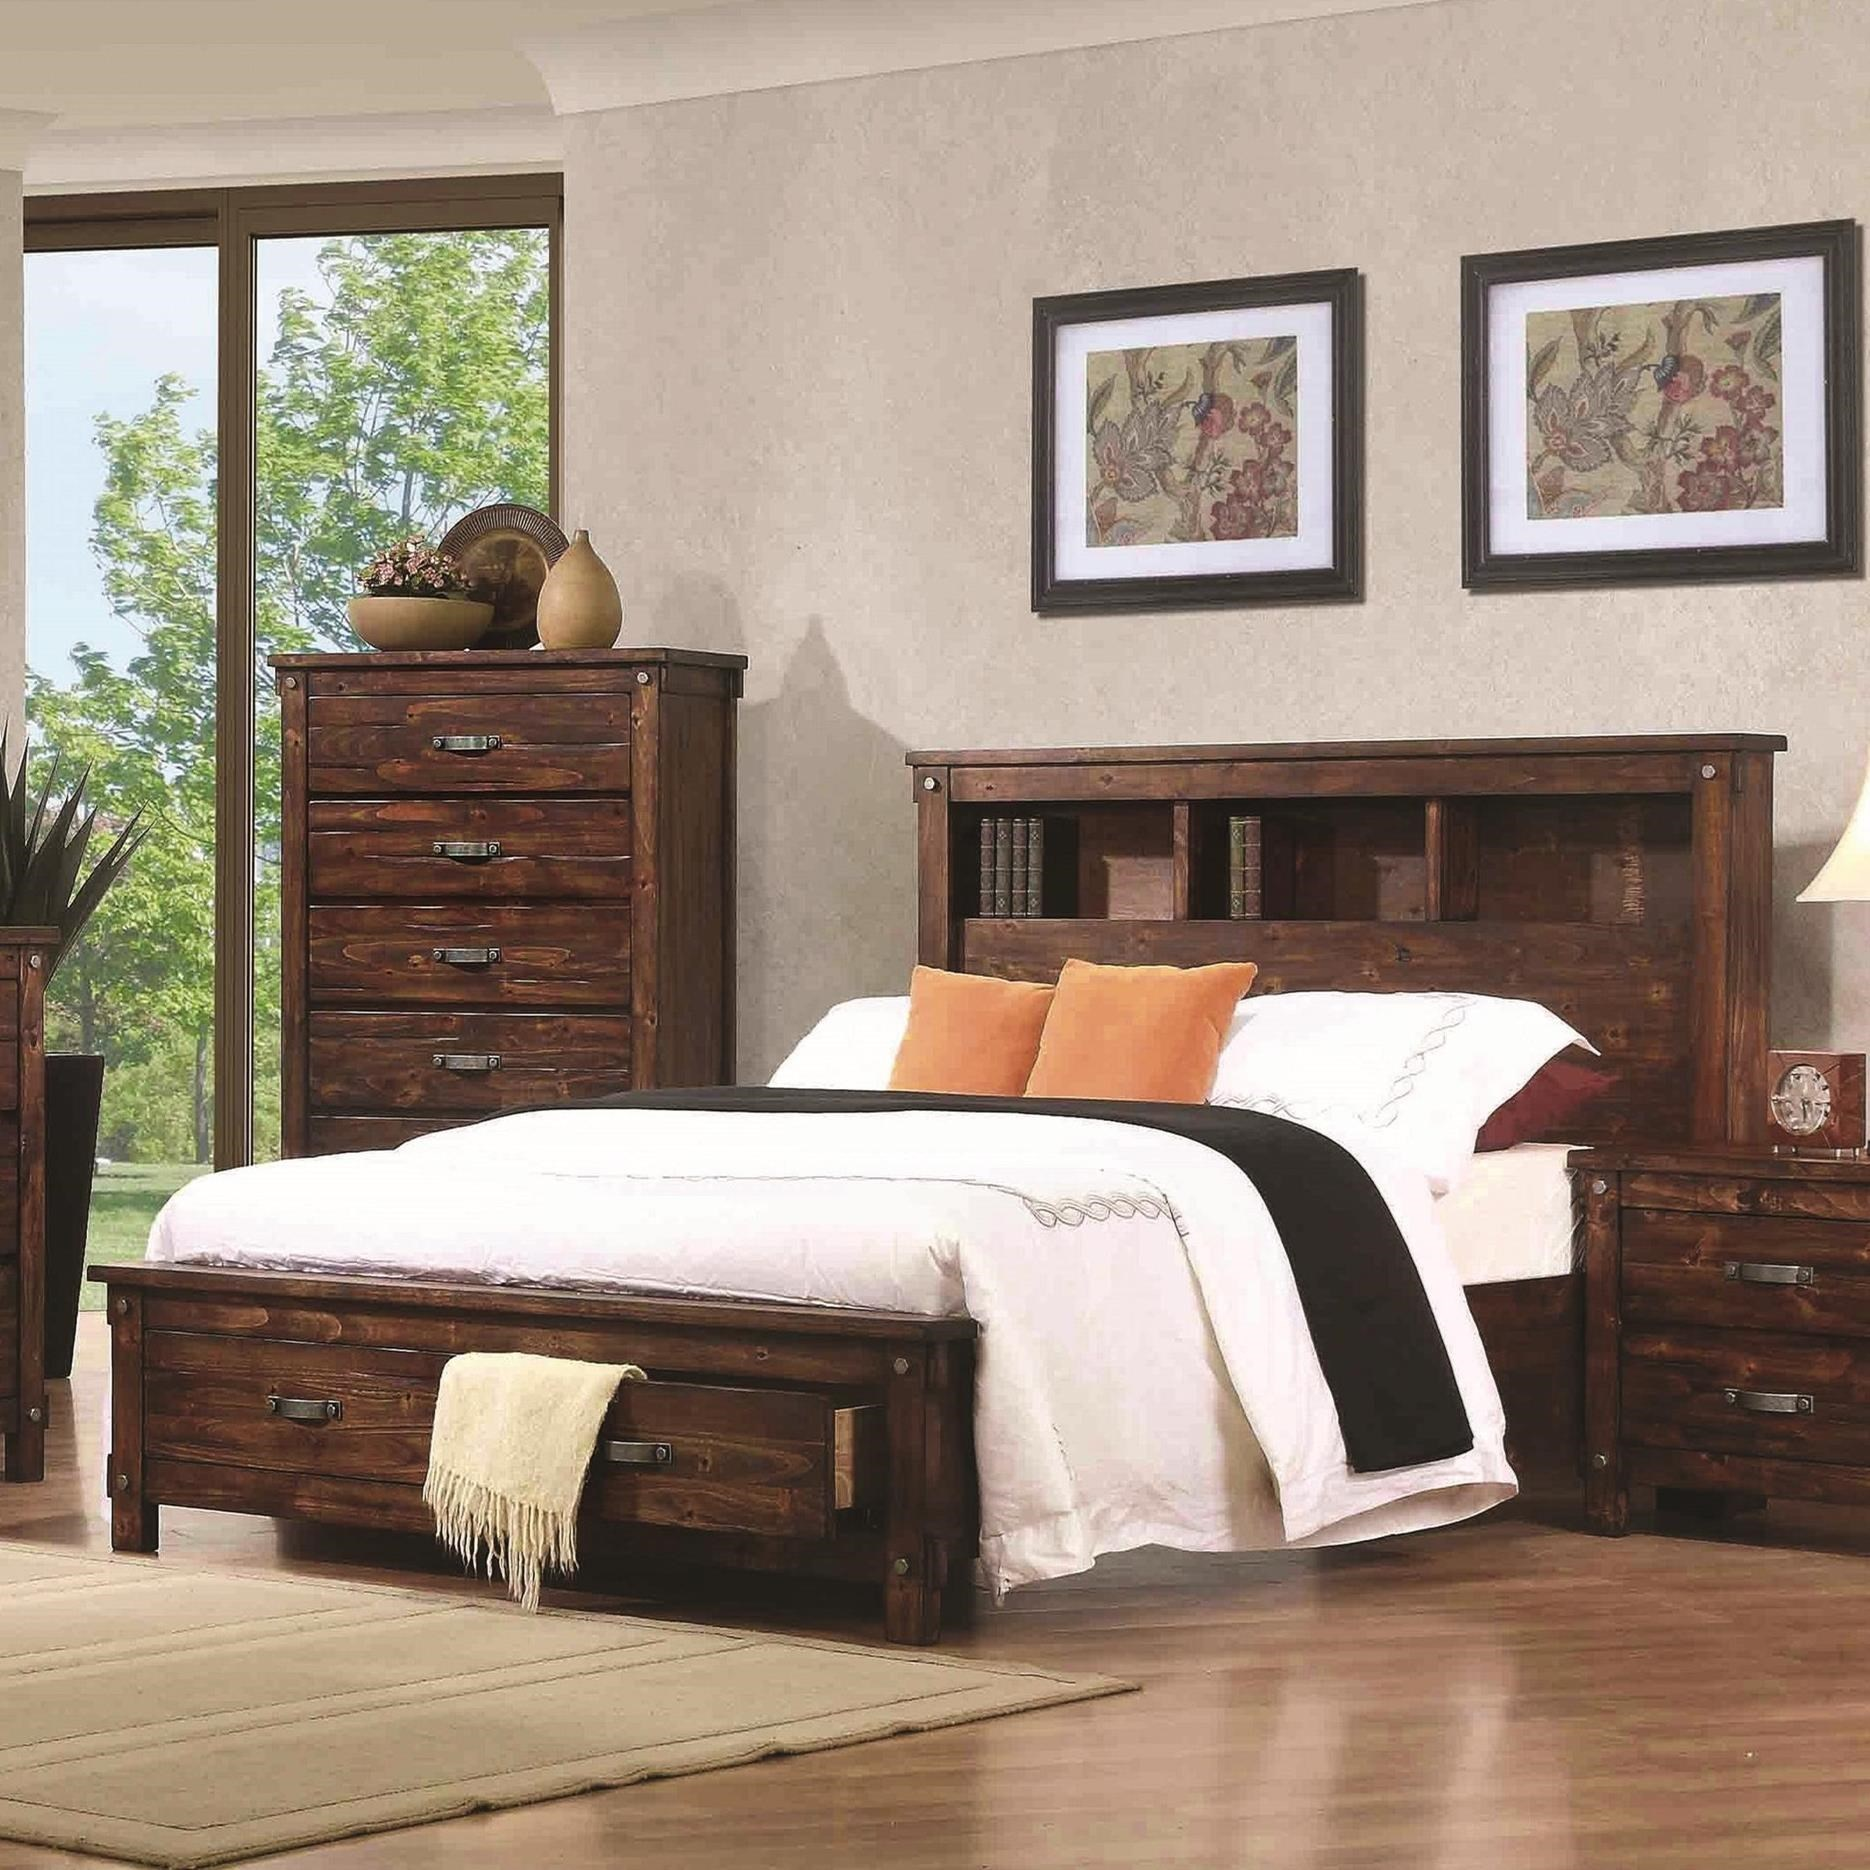 Coaster Noble B219 22 California King Bookcase Bed | Northeast